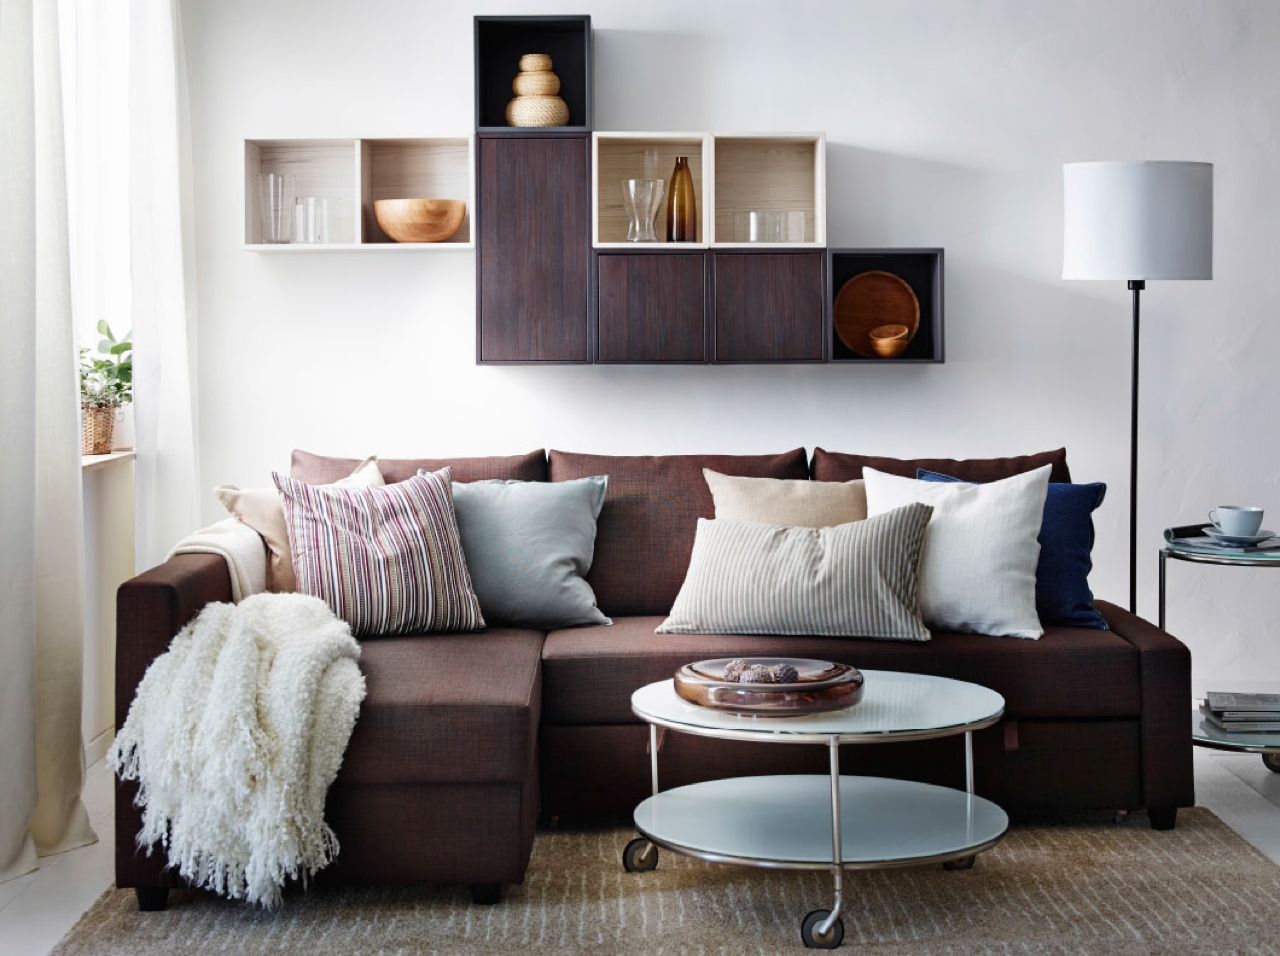 decorating your living room from ikea: here's 24 beautiful stays - Soggiorno Tv Ikea 2